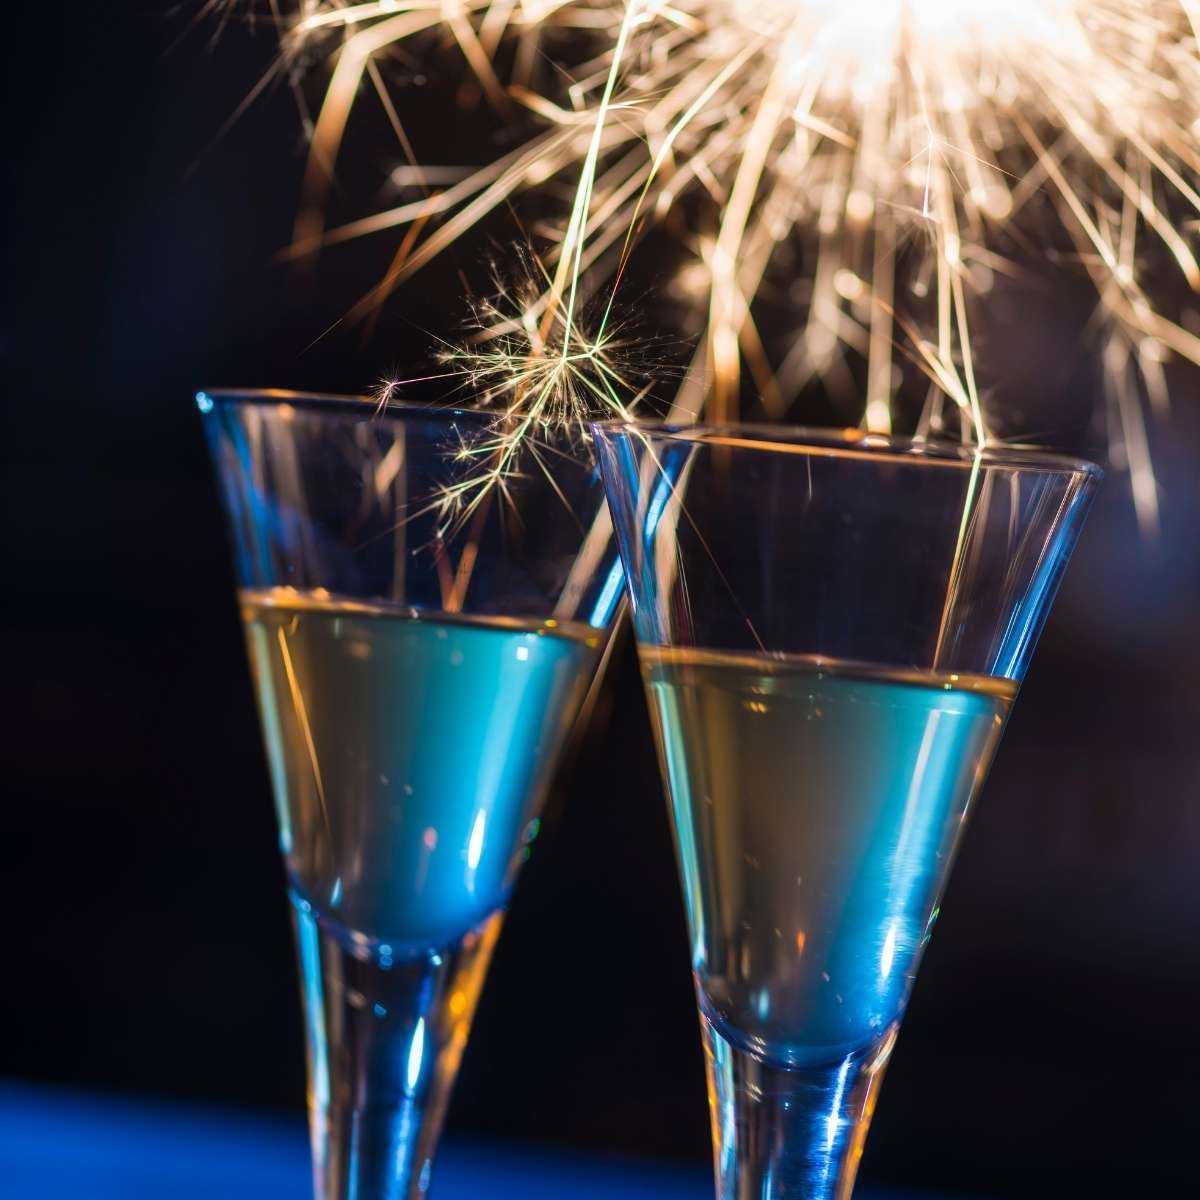 Sparklers glisten at night over two glass flutes of champagne